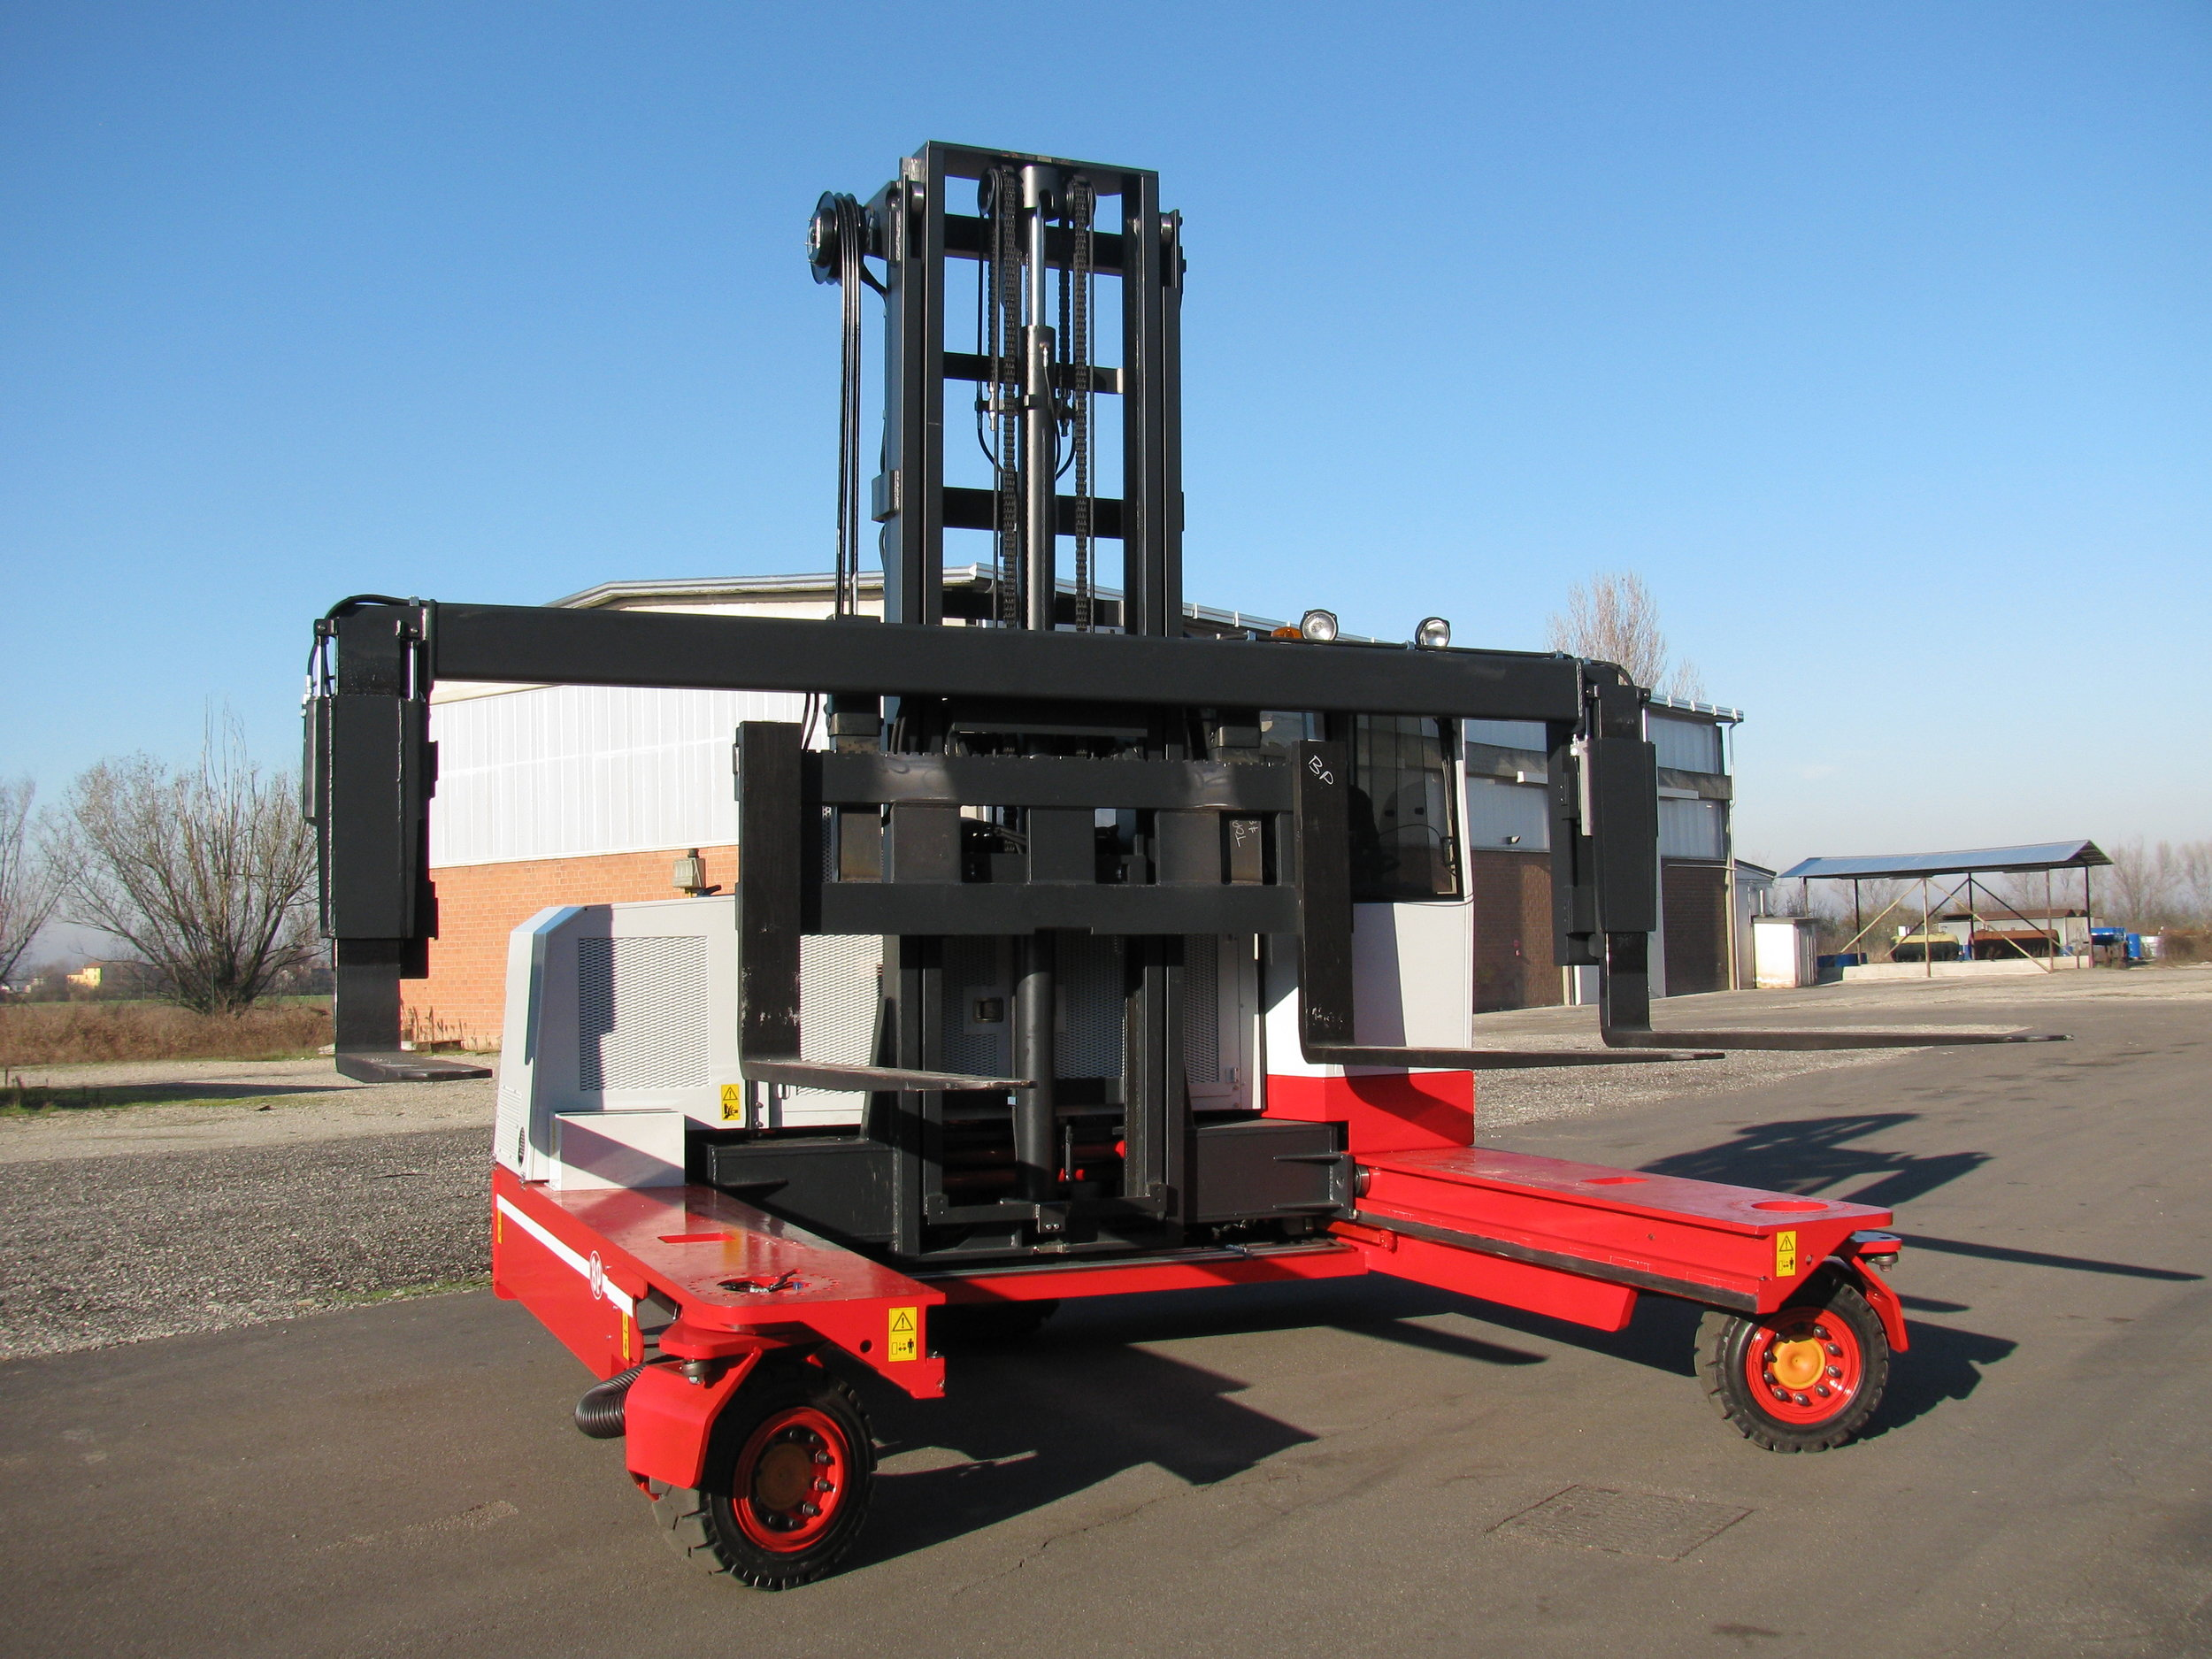 BP with wide fork carriage for those extra wide loads